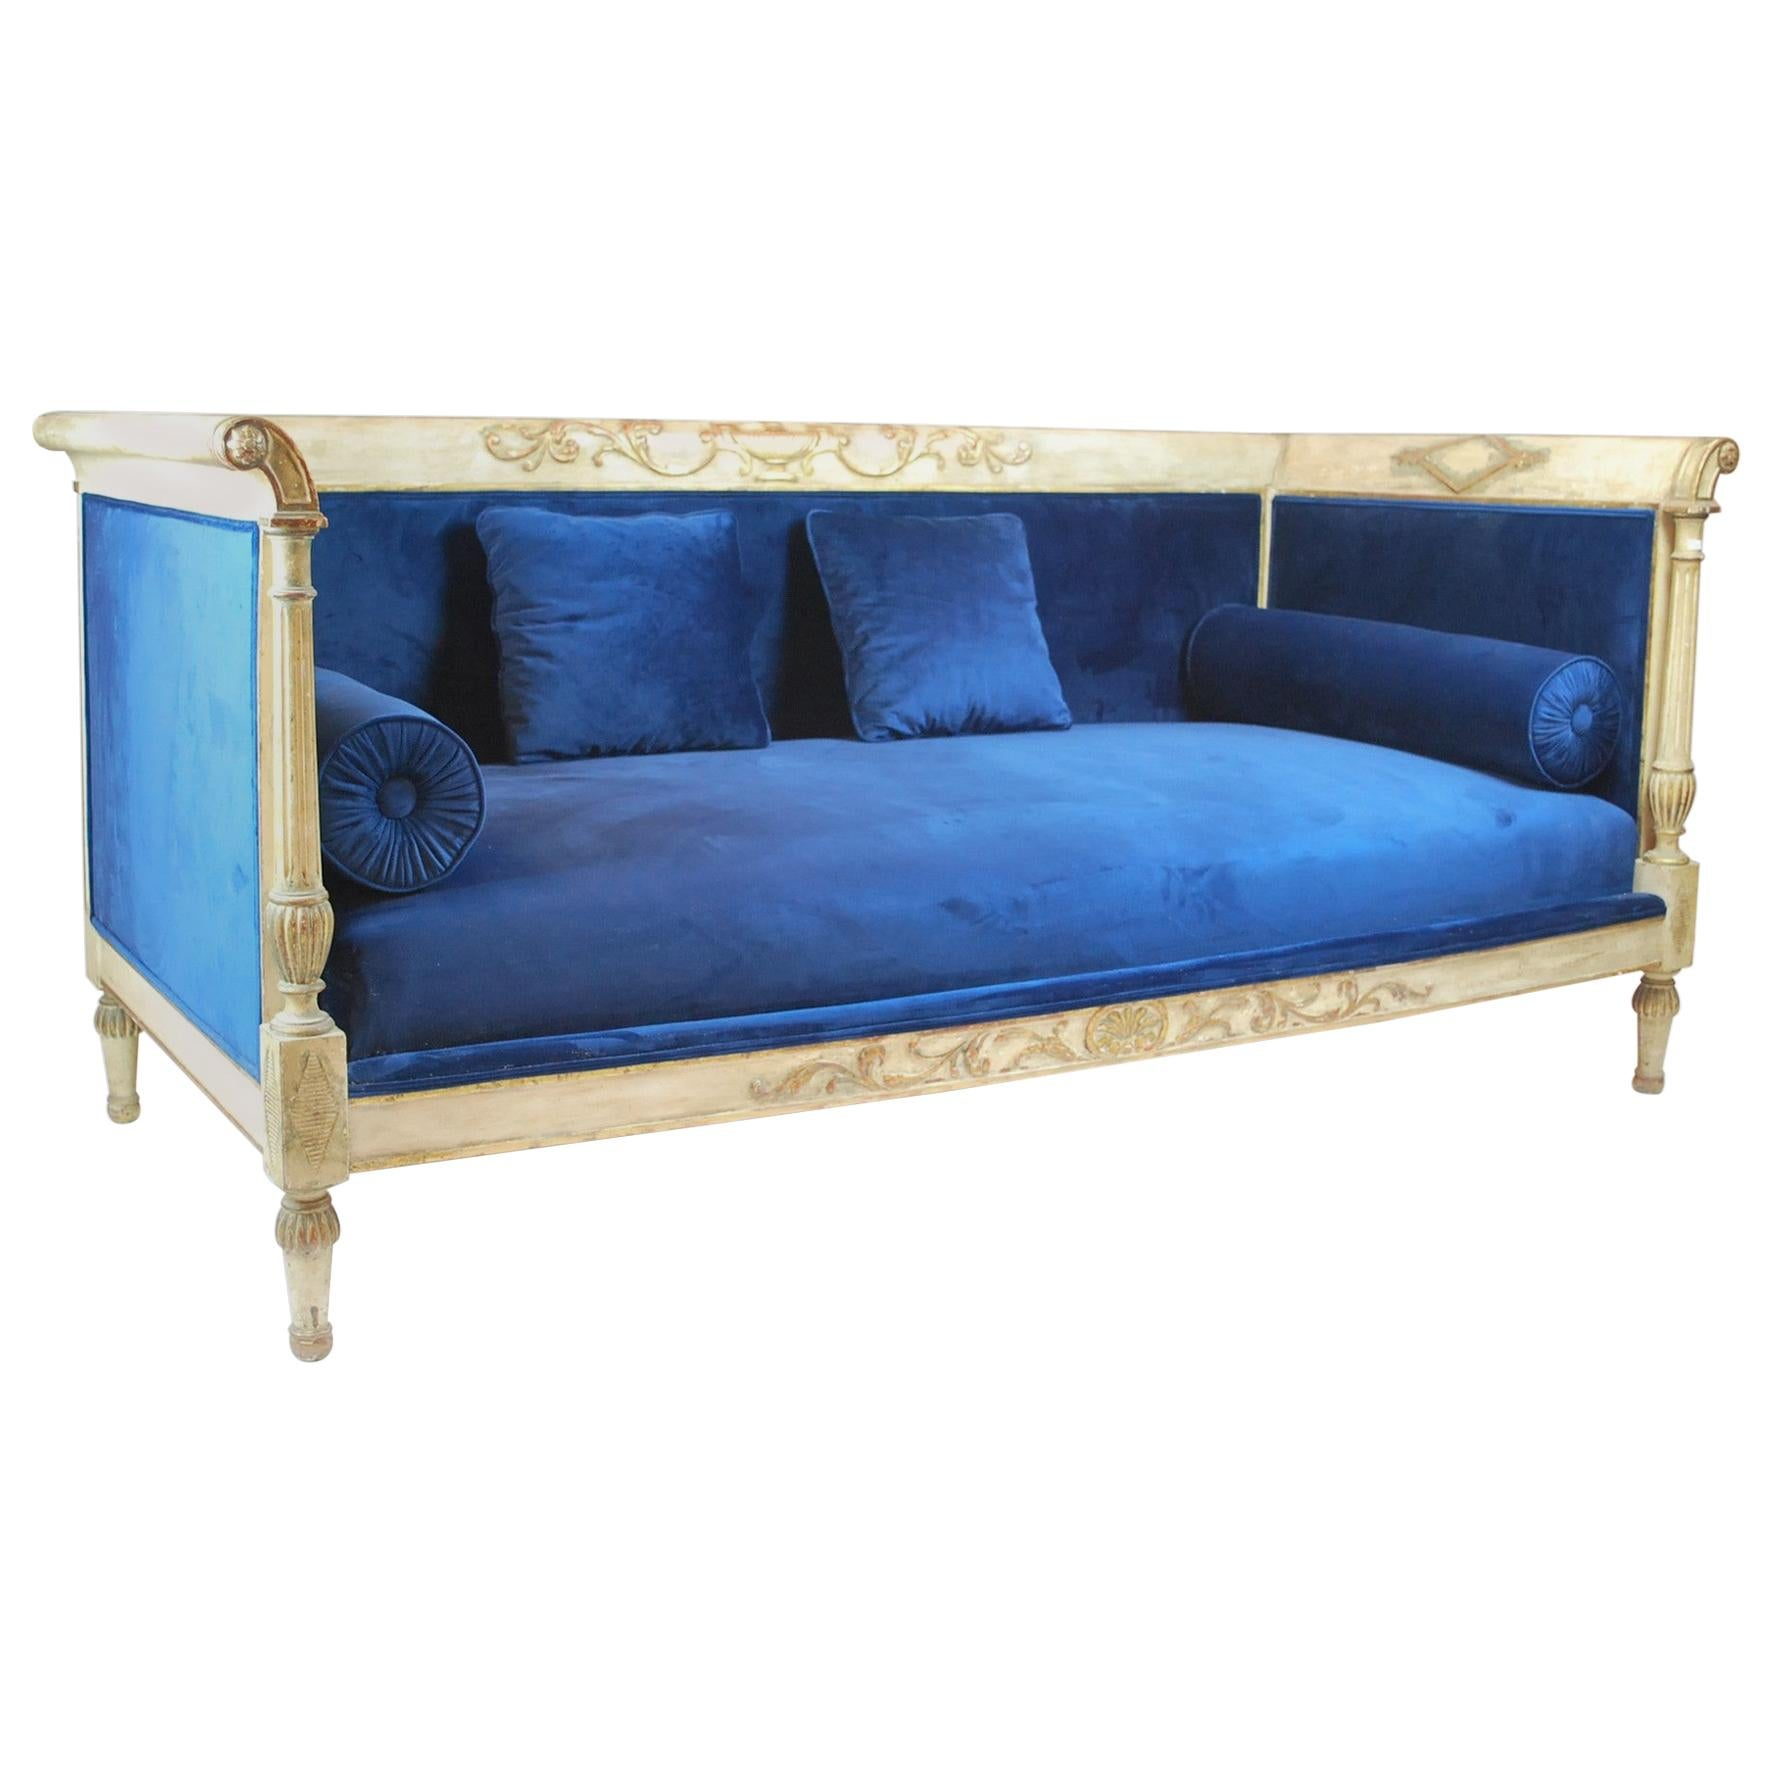 Early 20th Century Directoire Style Sofa